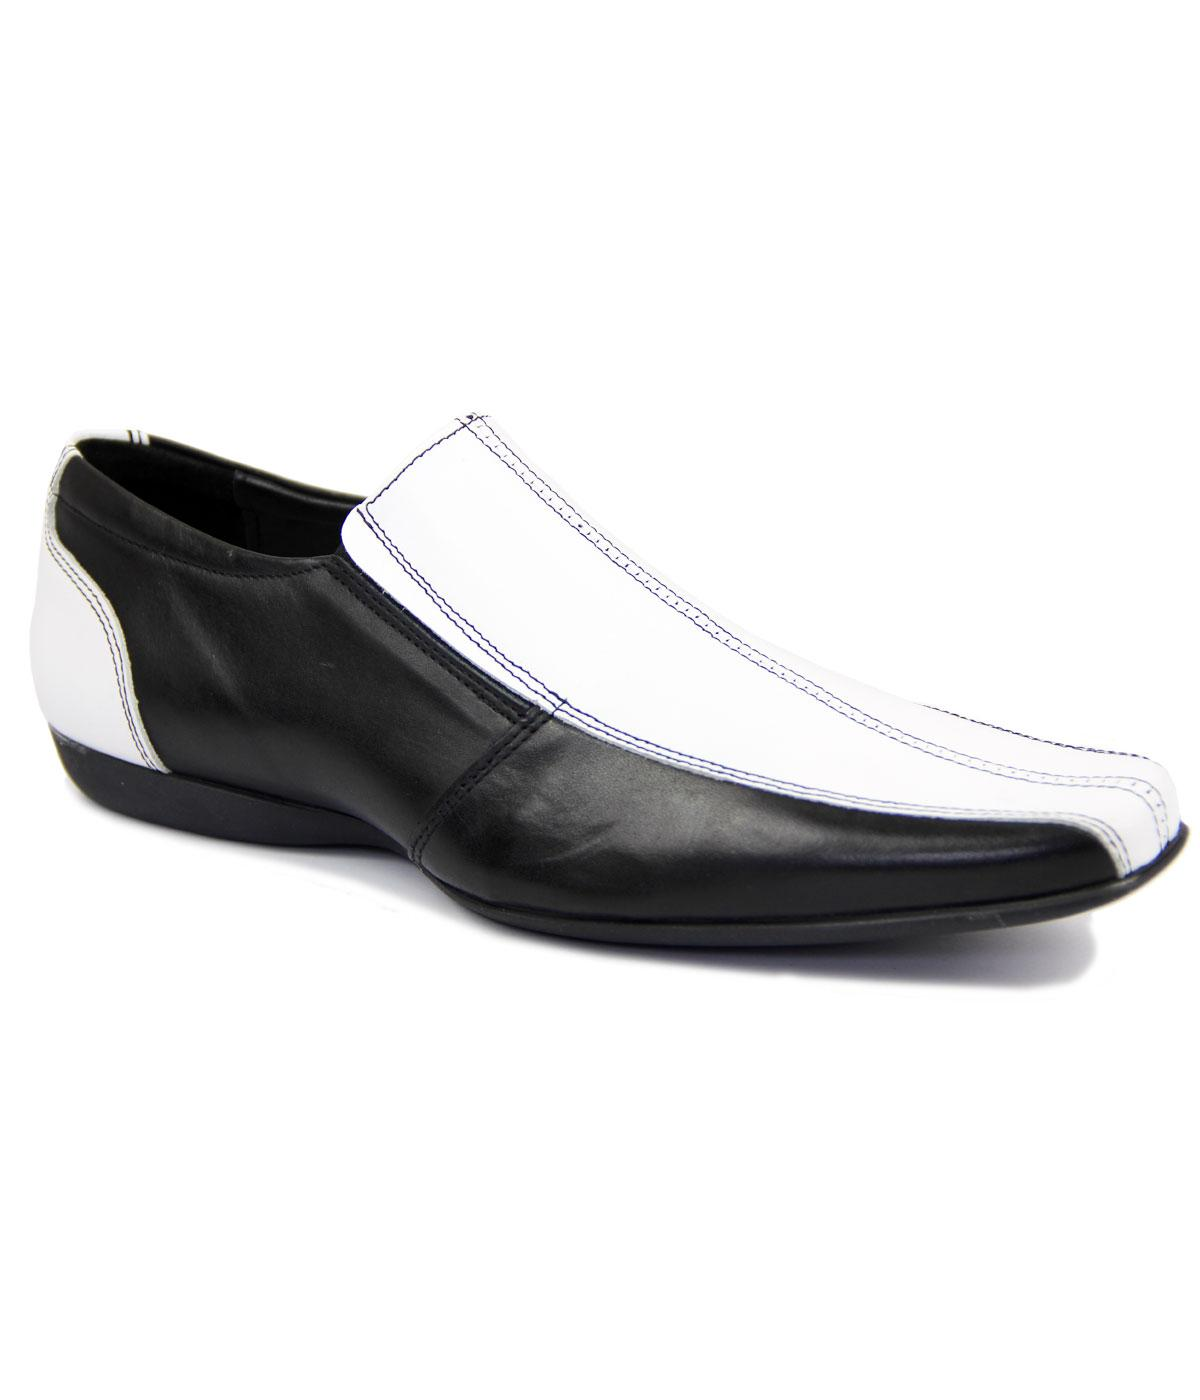 Eton DELICIOUS JUNCTION Mod 2-Tone Slip On Loafer